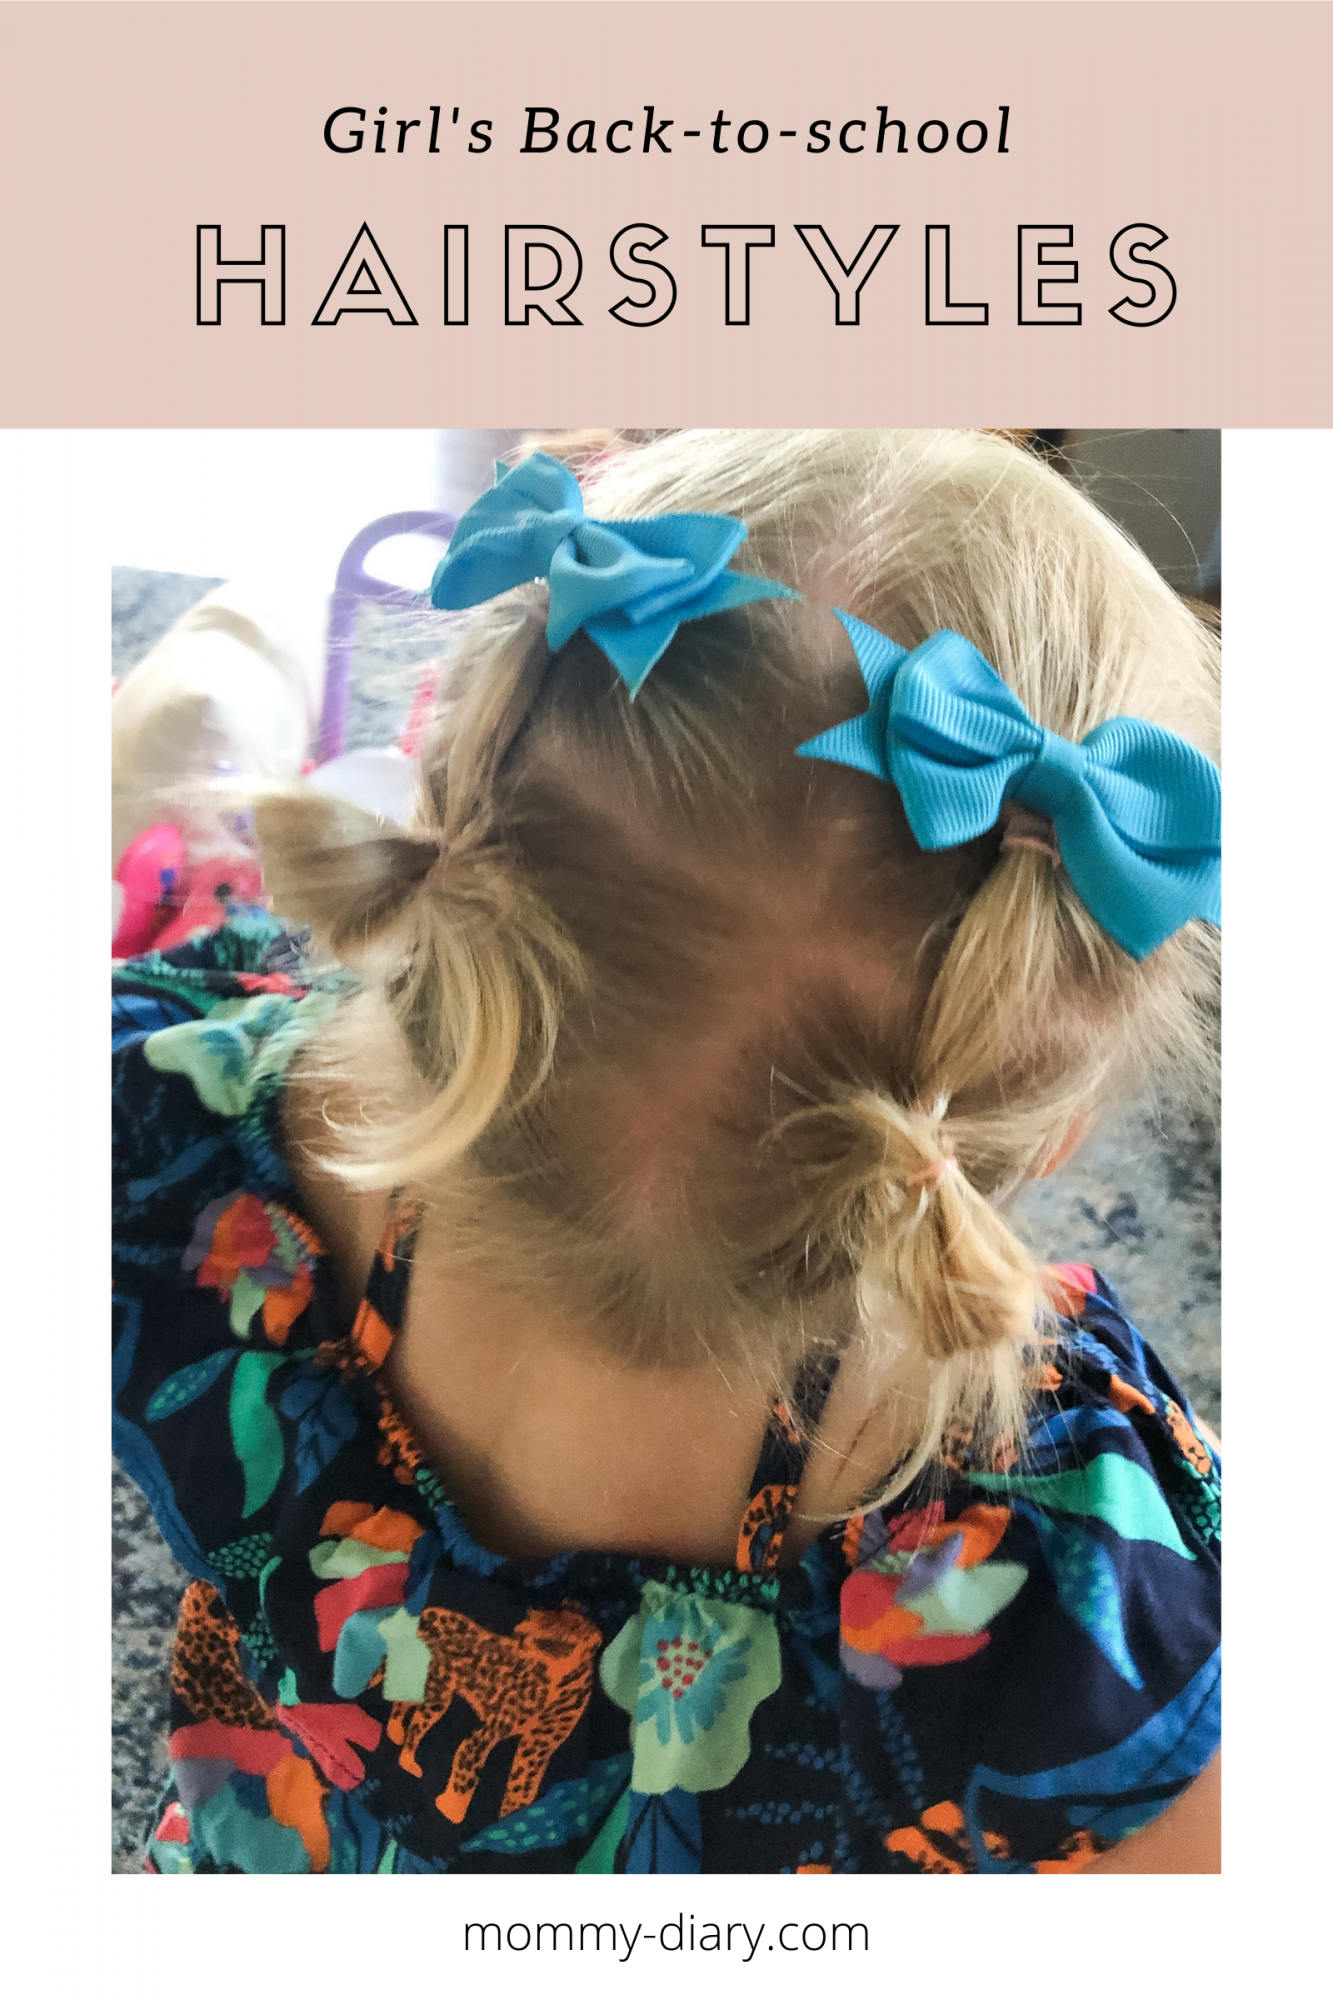 5 Back-To-School Hairstyles for Girls